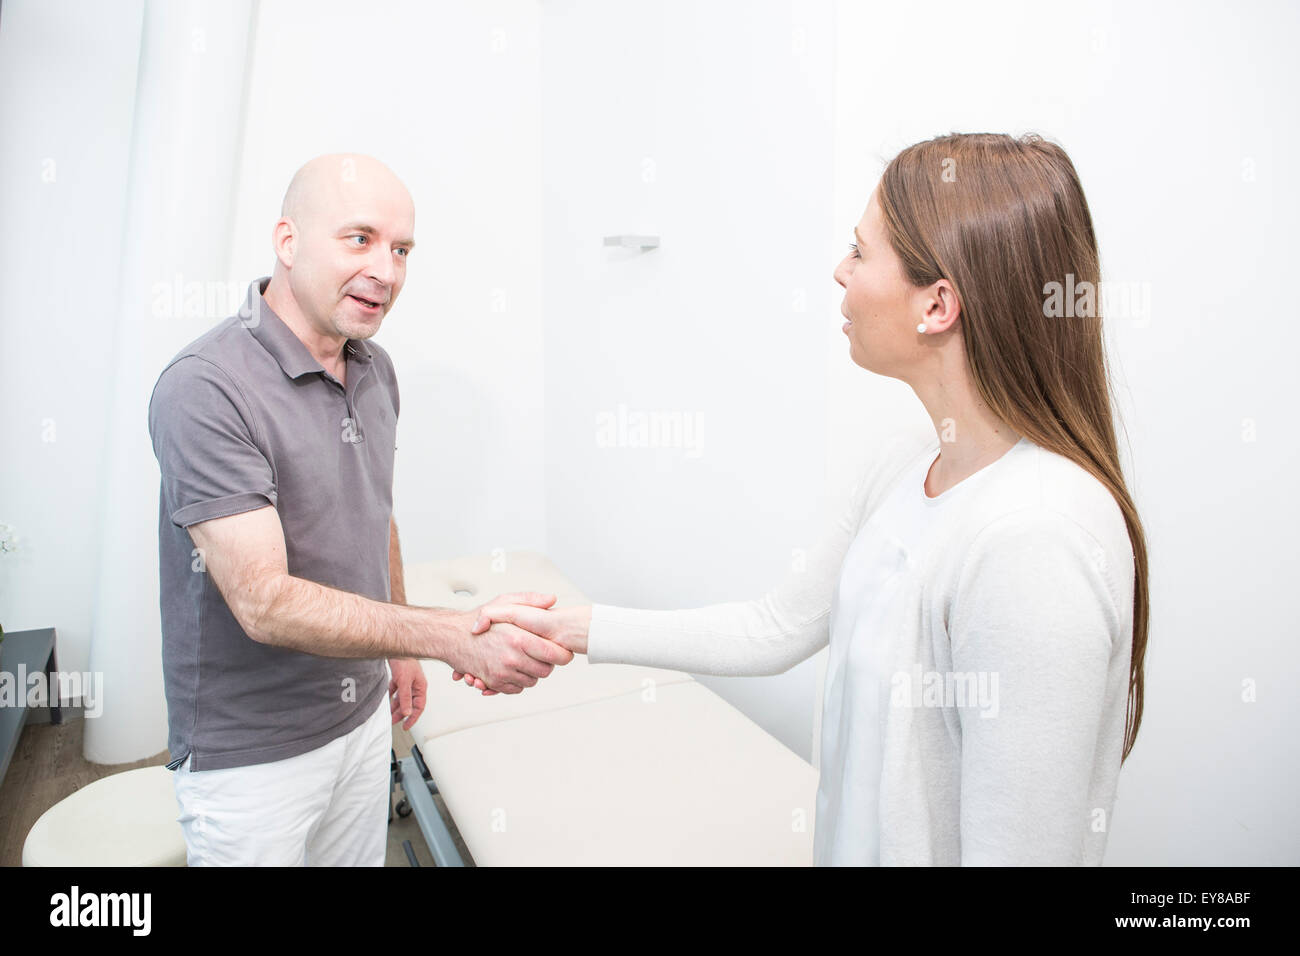 Physiotherapist and female patient - Stock Image